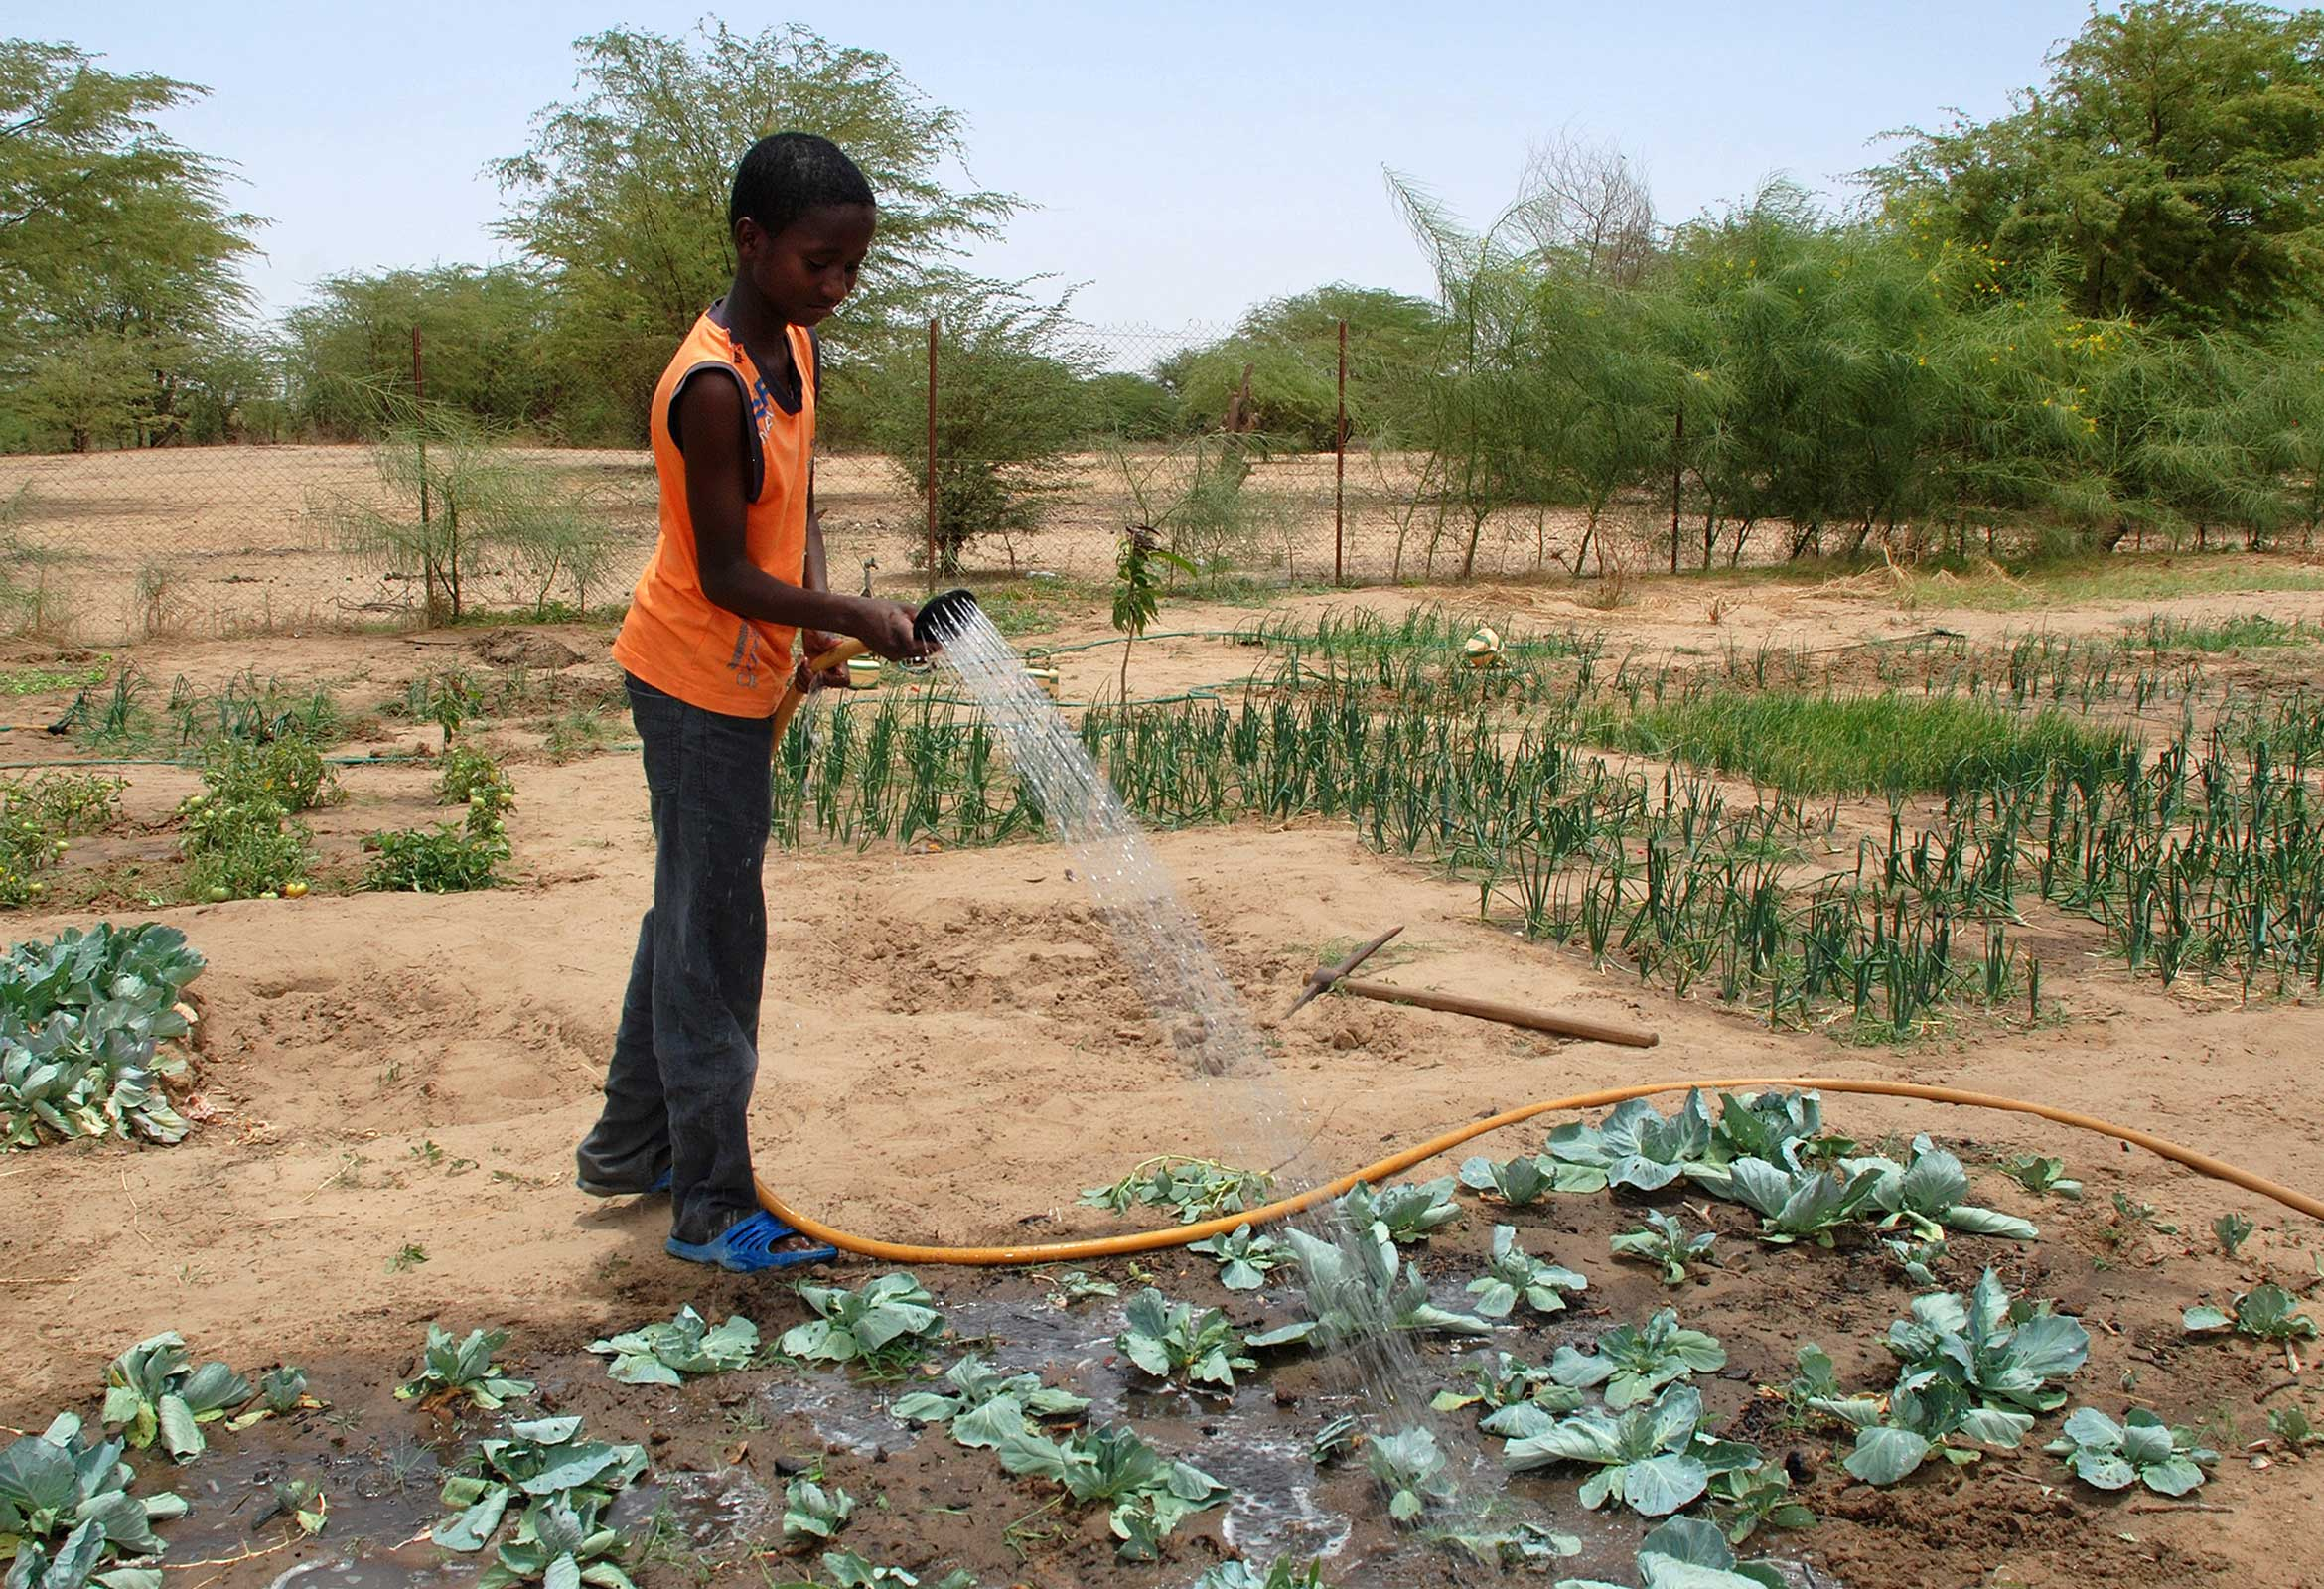 Photograph of a Senegalese pupil watering plants on the Barfoots SCL farm in Senegal